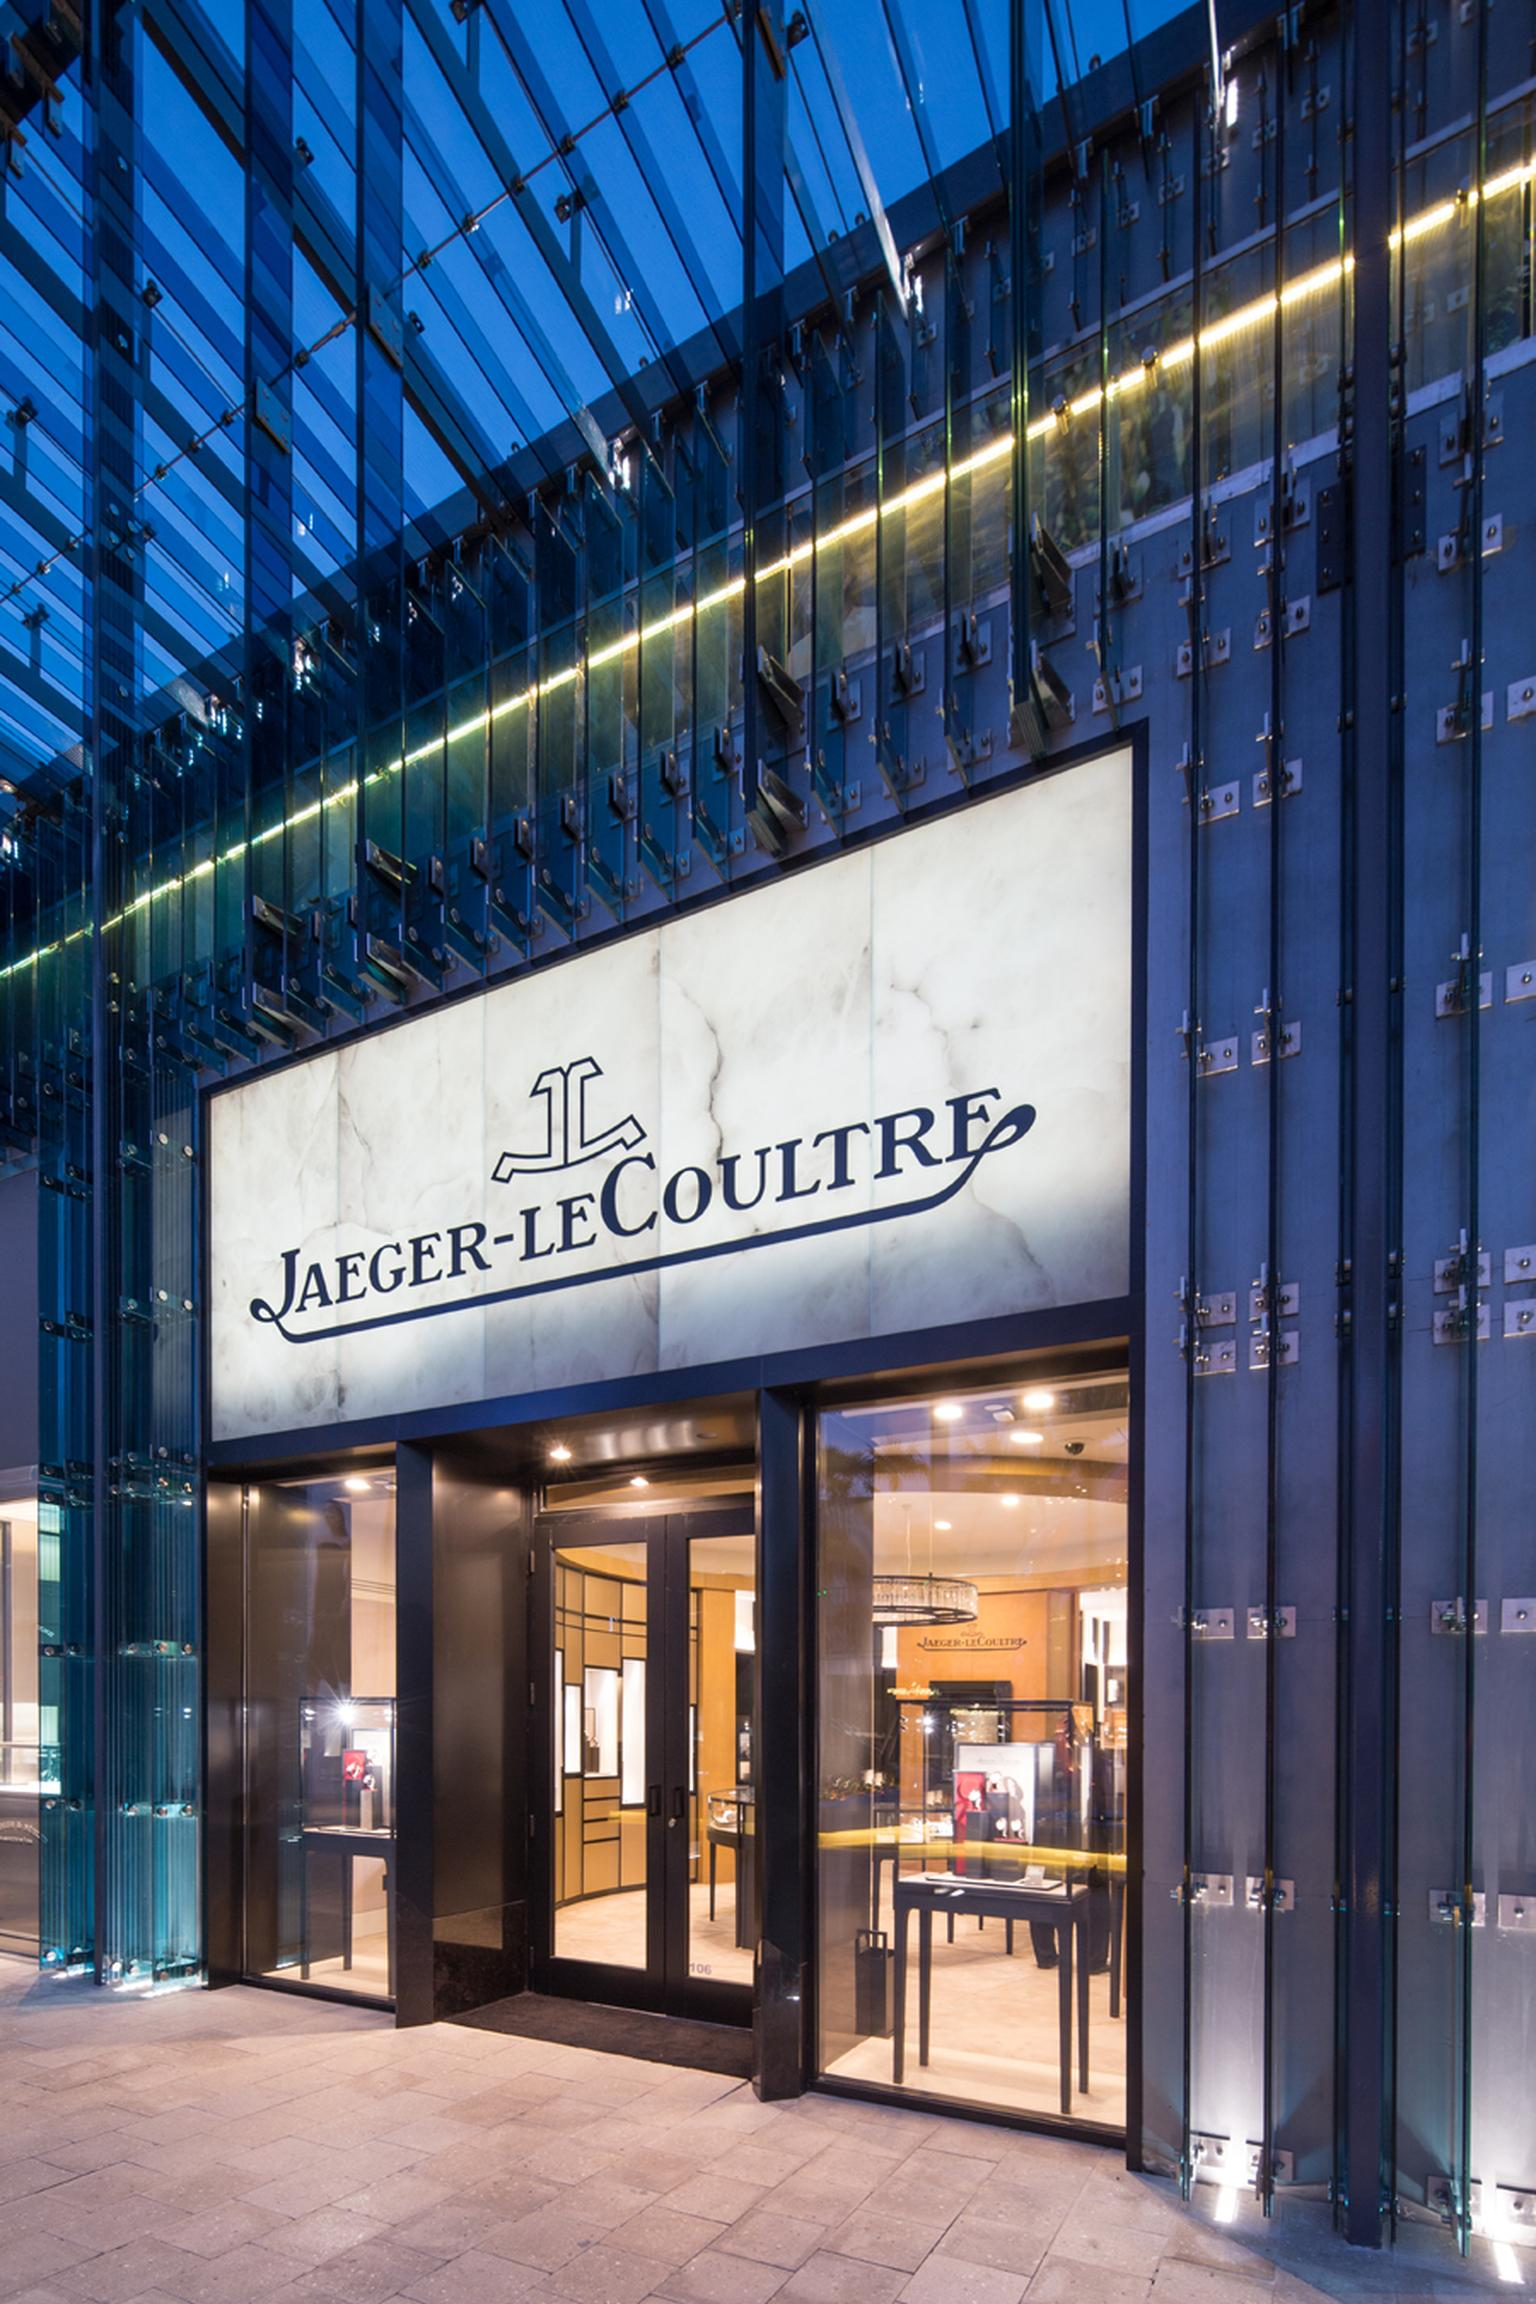 Jaeger-LeCoultre, a major player in watchmaking, also has a boutique located in the constantly evolving Miami Design District.